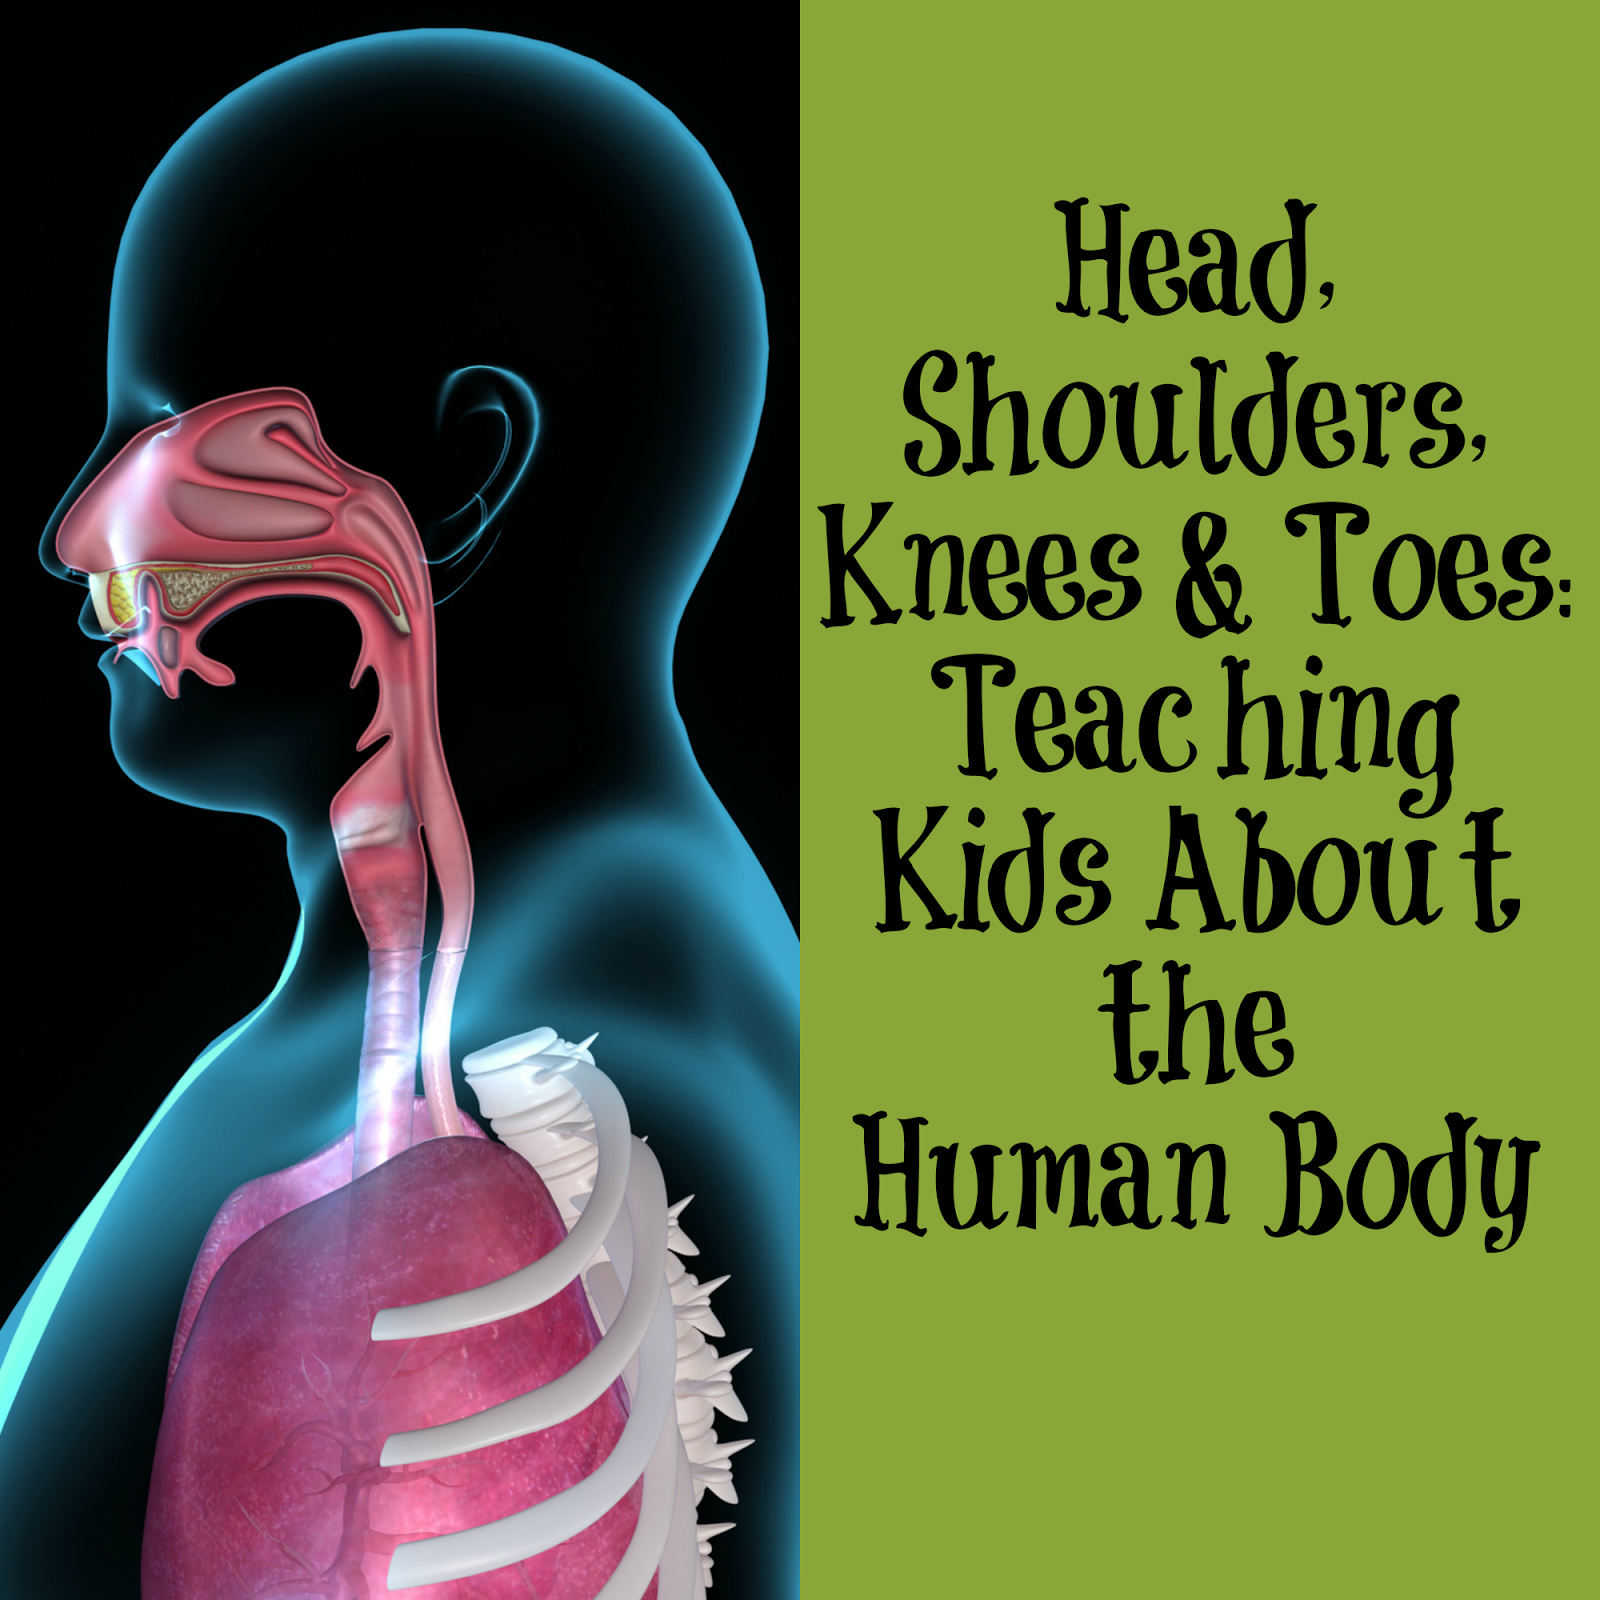 Head, Shoulders, Knees & Toes: Teaching Kids About the Human Body ...